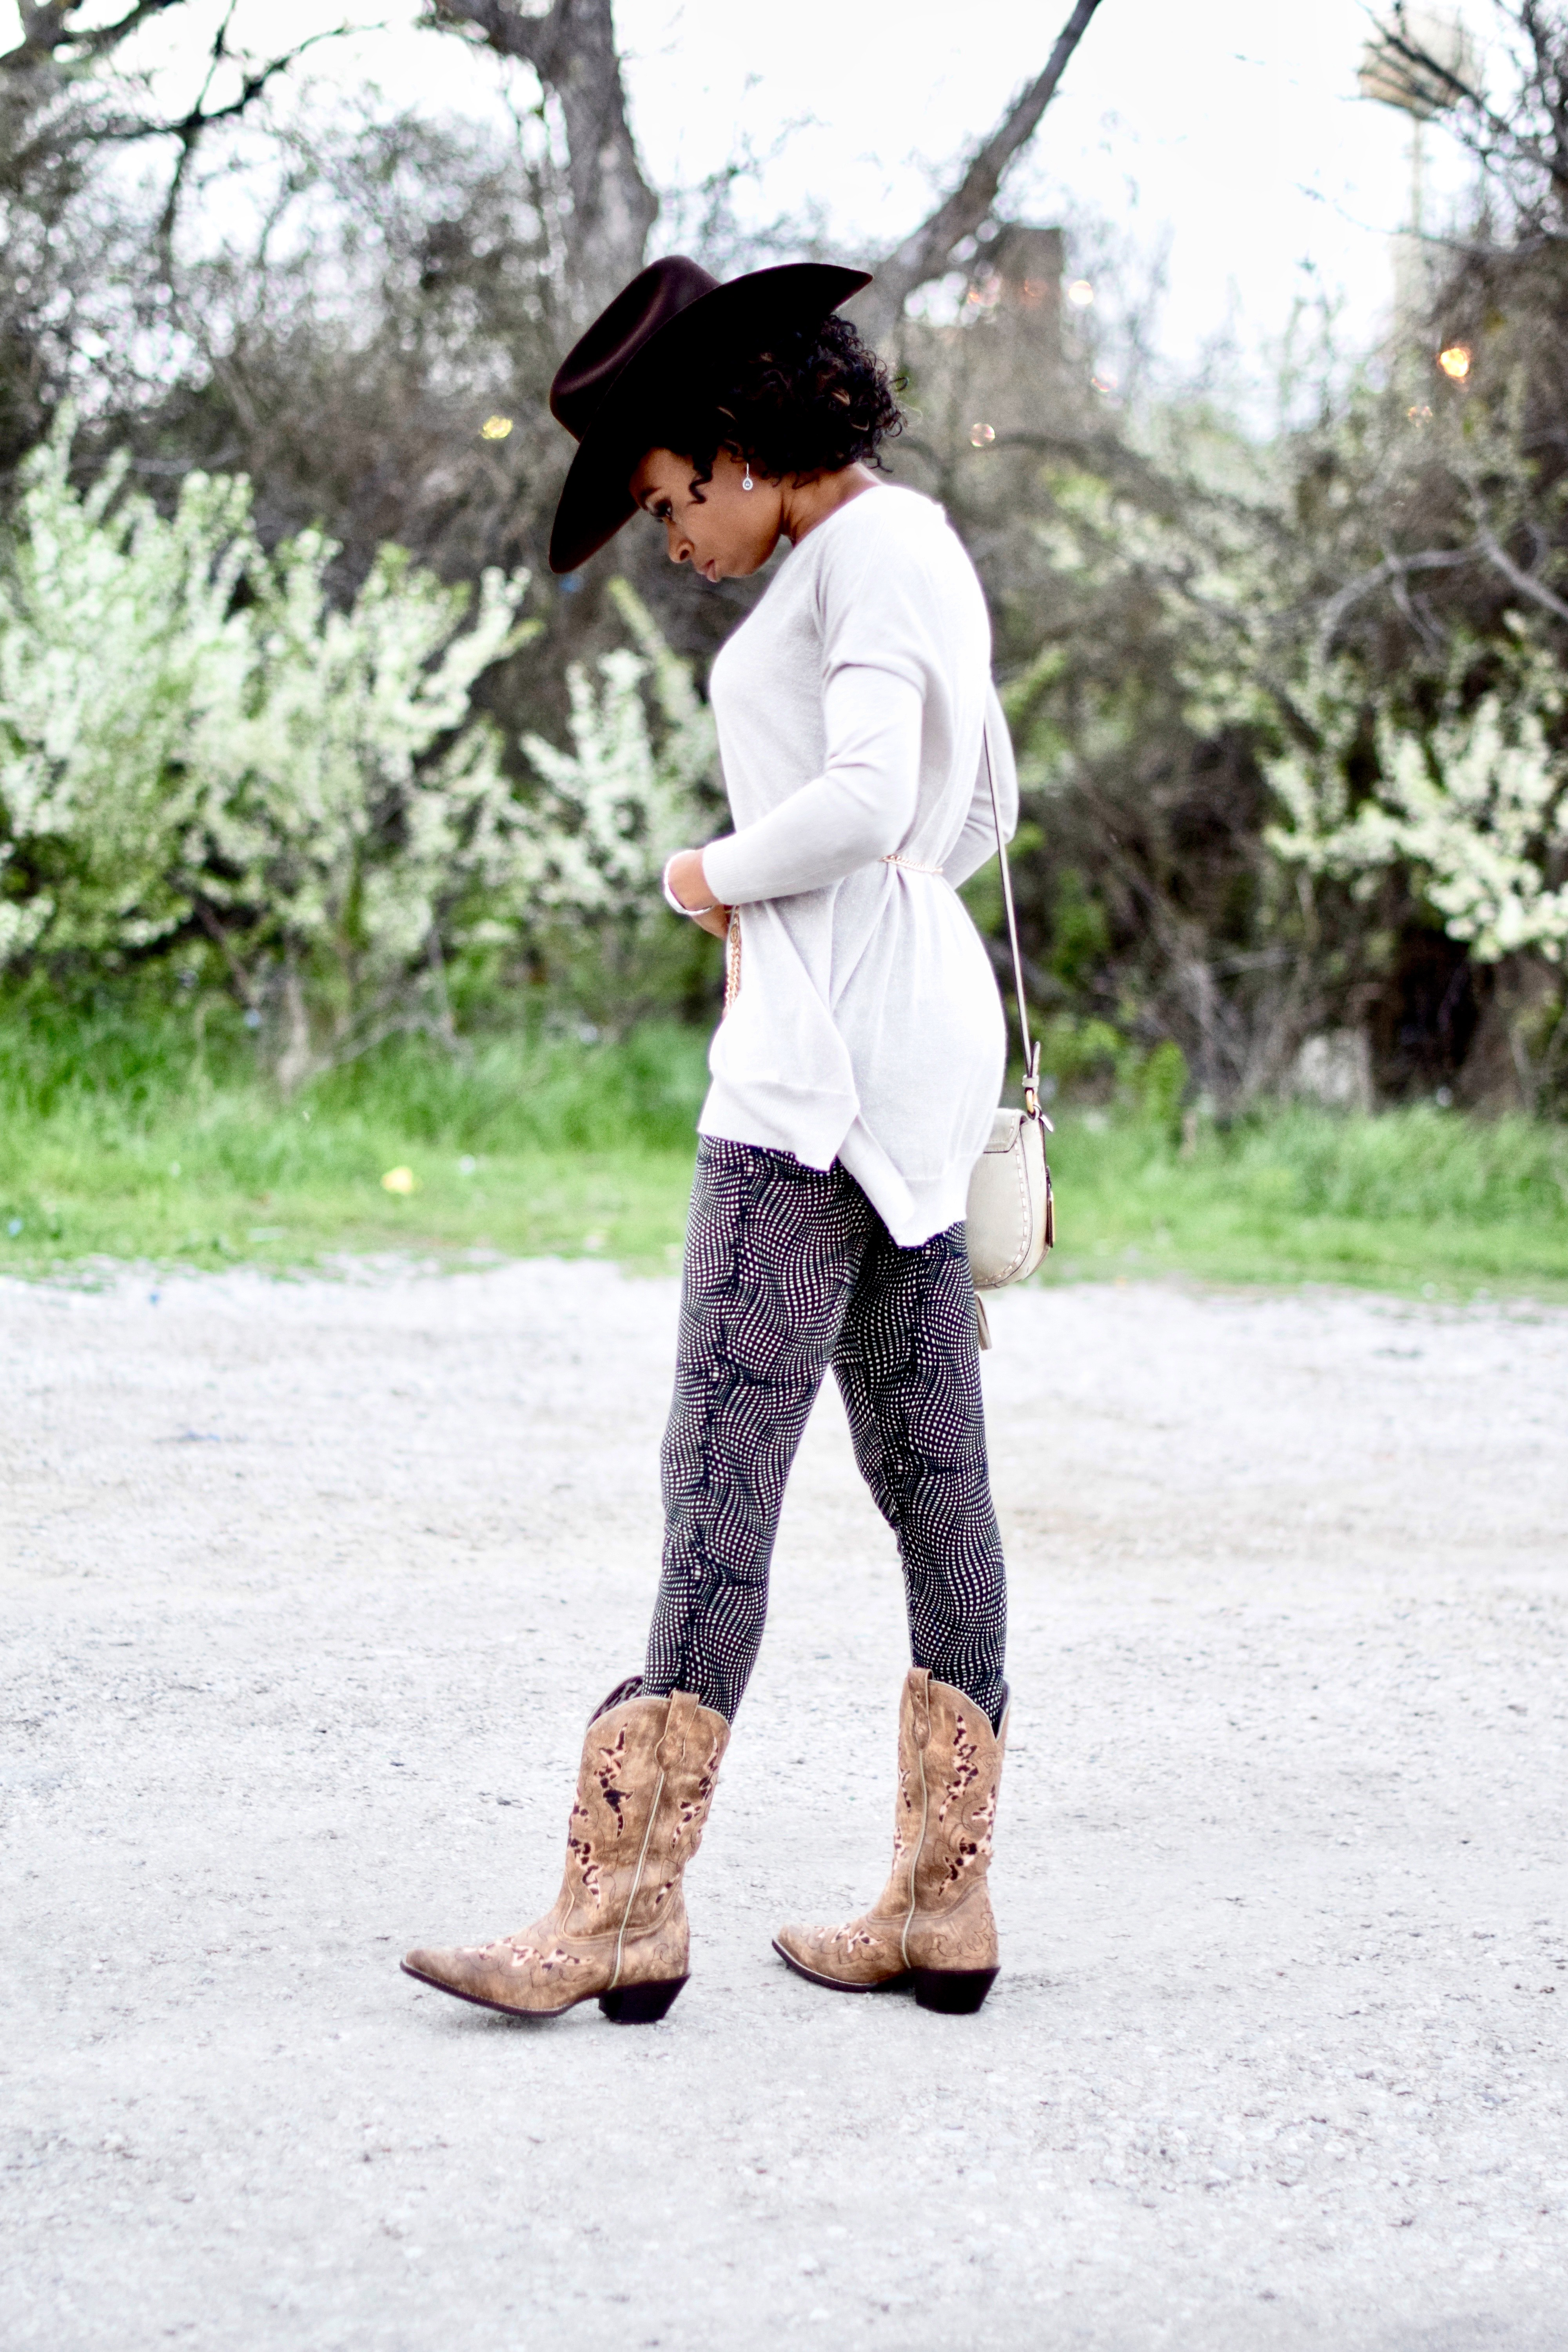 LulaRoe Leggings | Cowgirl Boots | Cowgirl Hat Posted By Vivellefashion